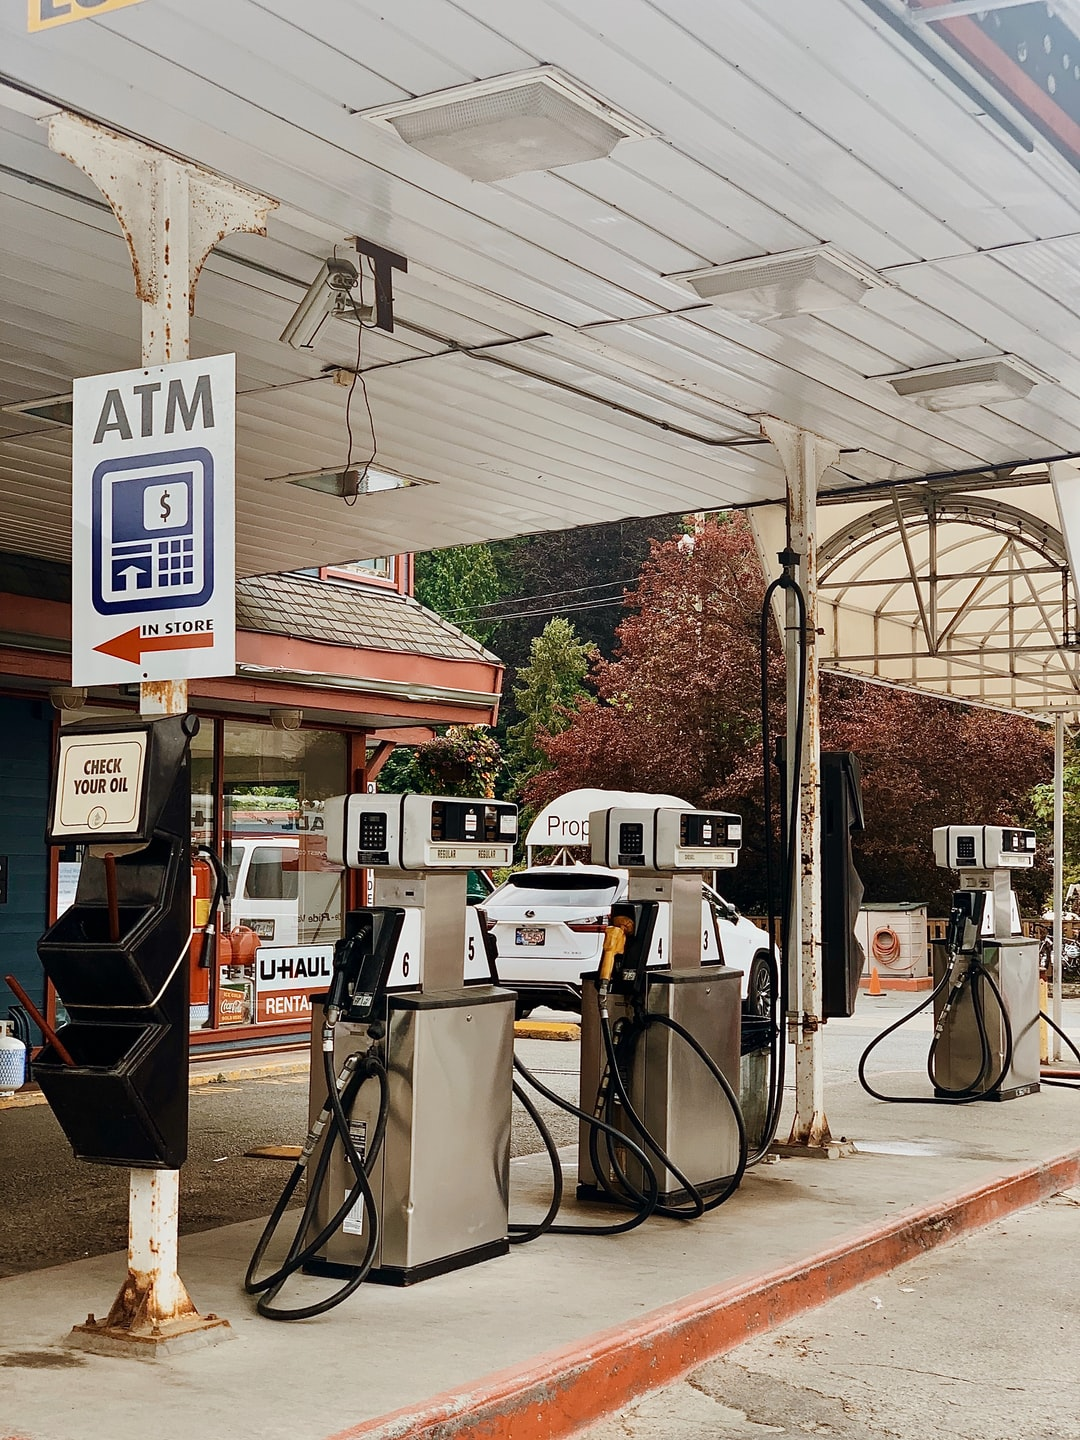 This gas station reminds me of a simpler time. When people drove Mercurys and drank Coca-Colas that were only 5 cents.